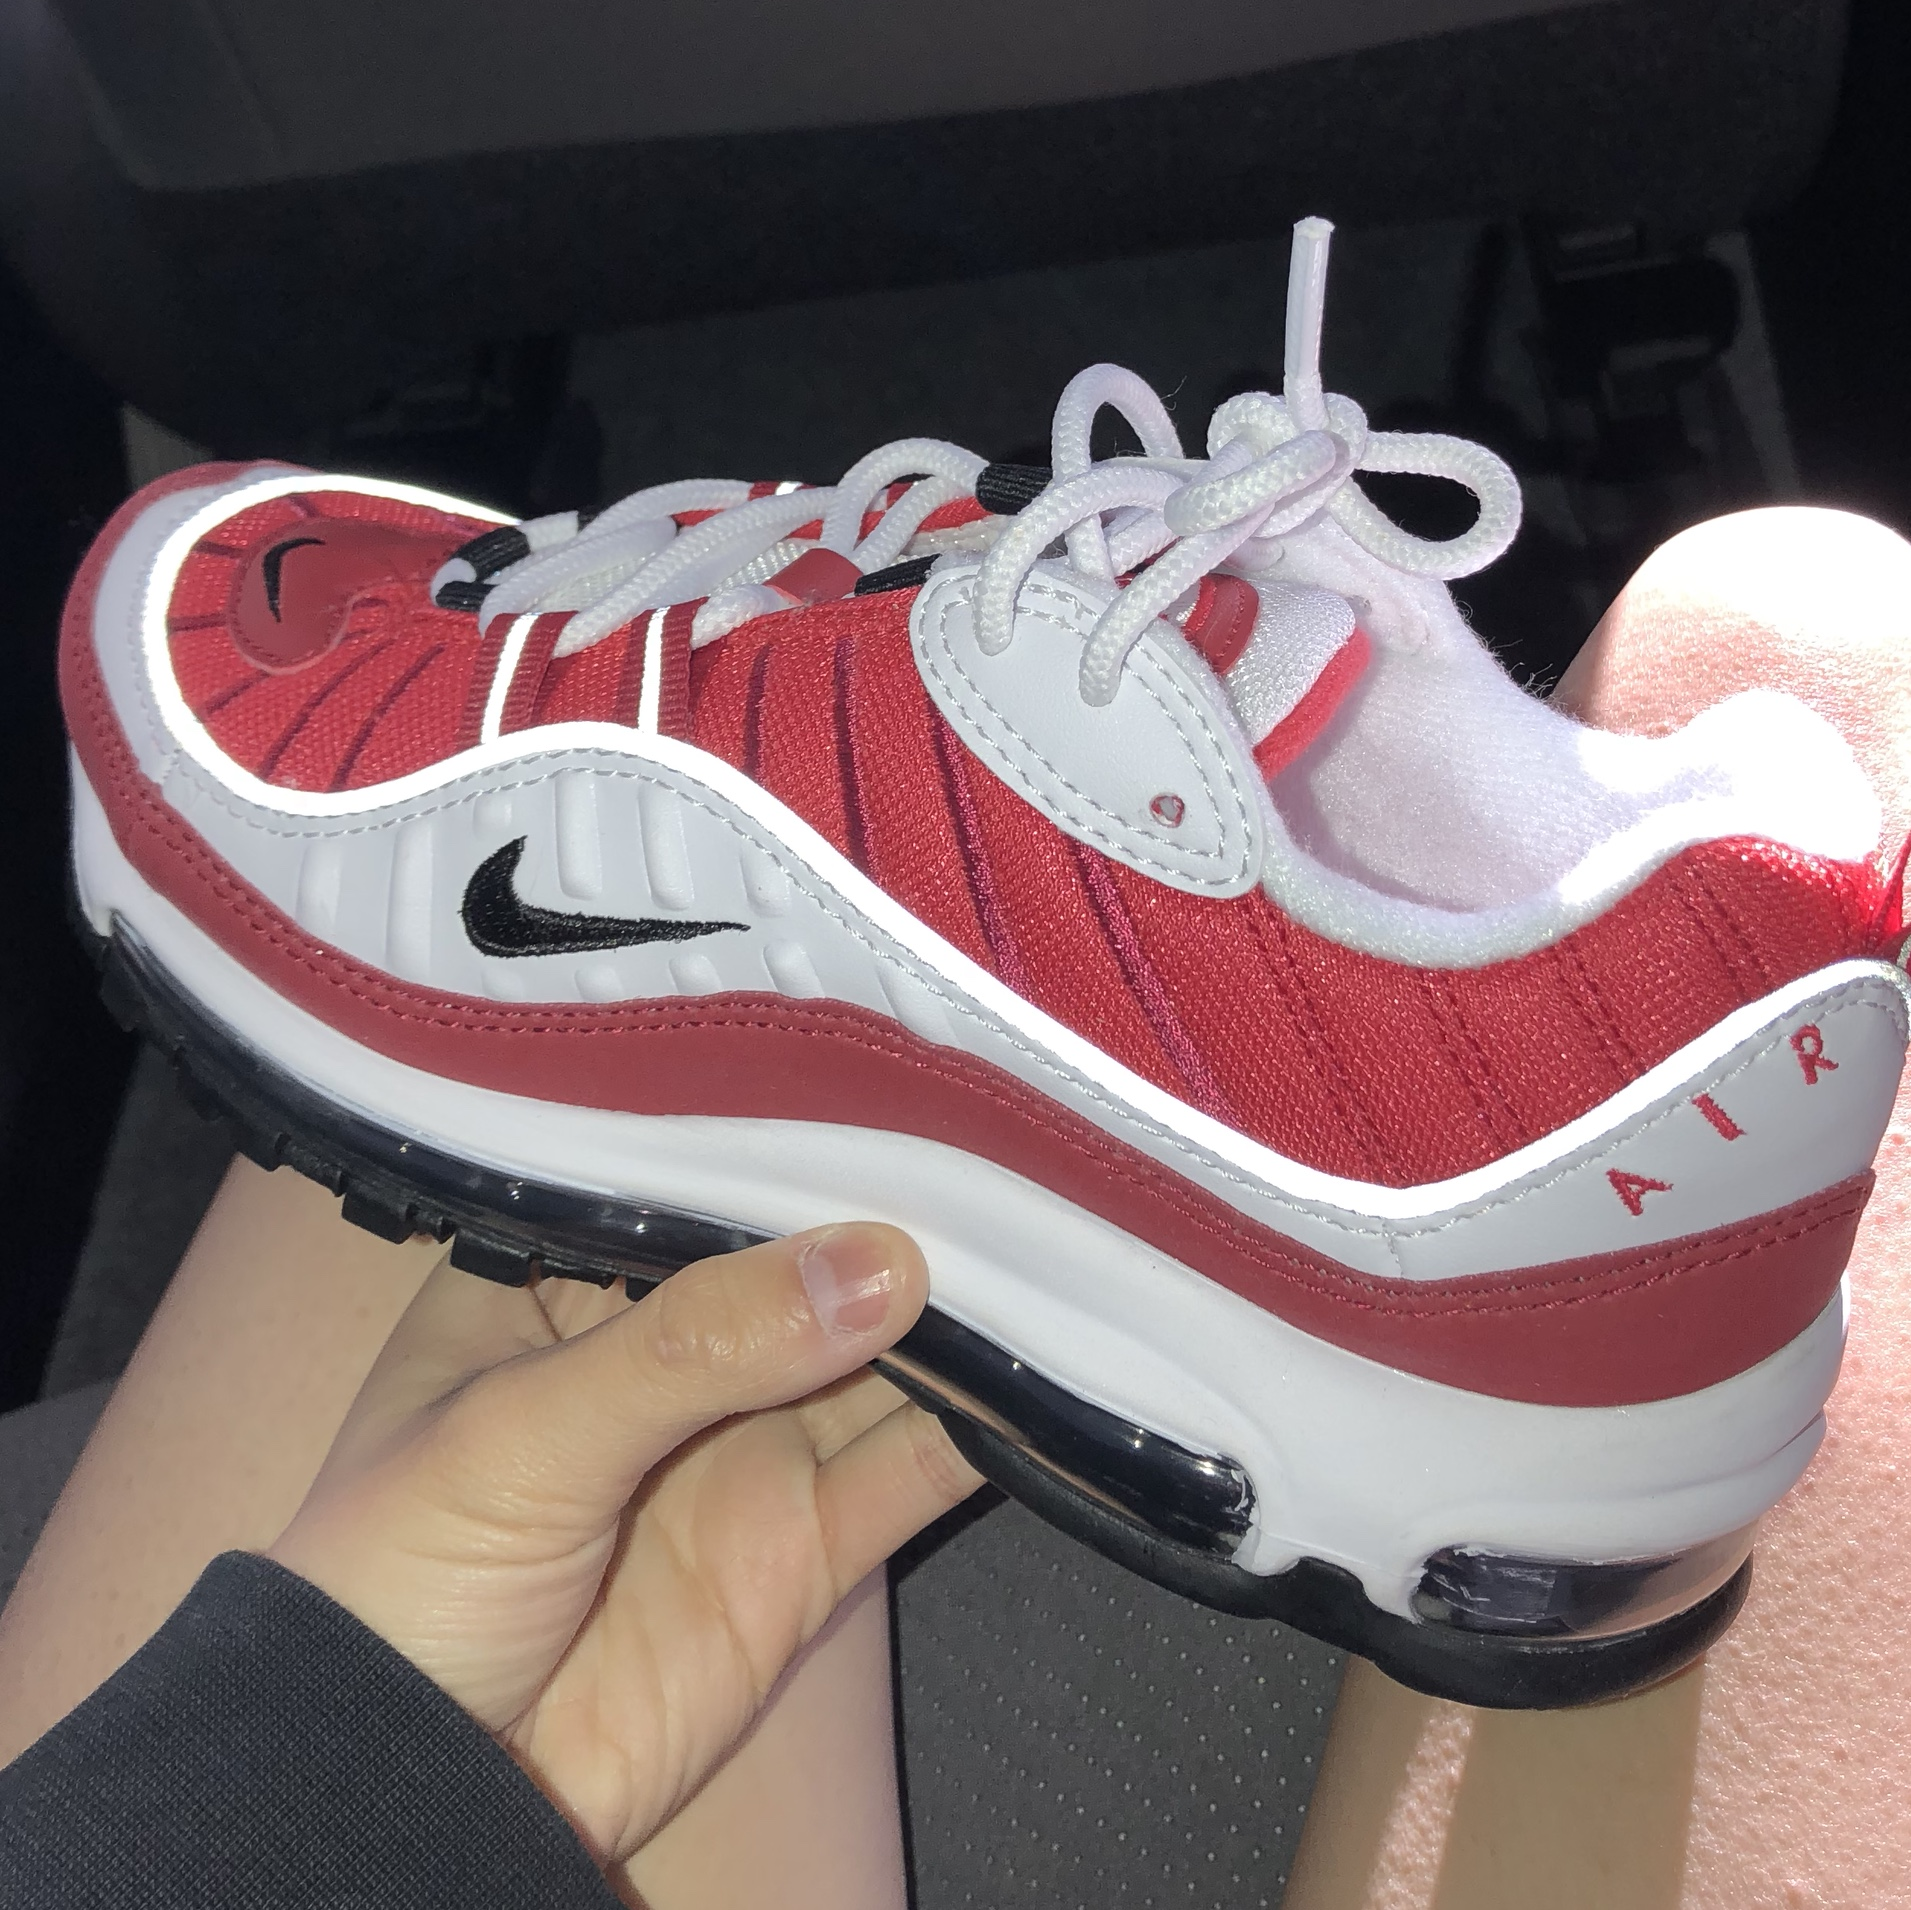 separation shoes e99d3 07ffb women's nike air max 98 gym red size 6 used, no box,... - Depop